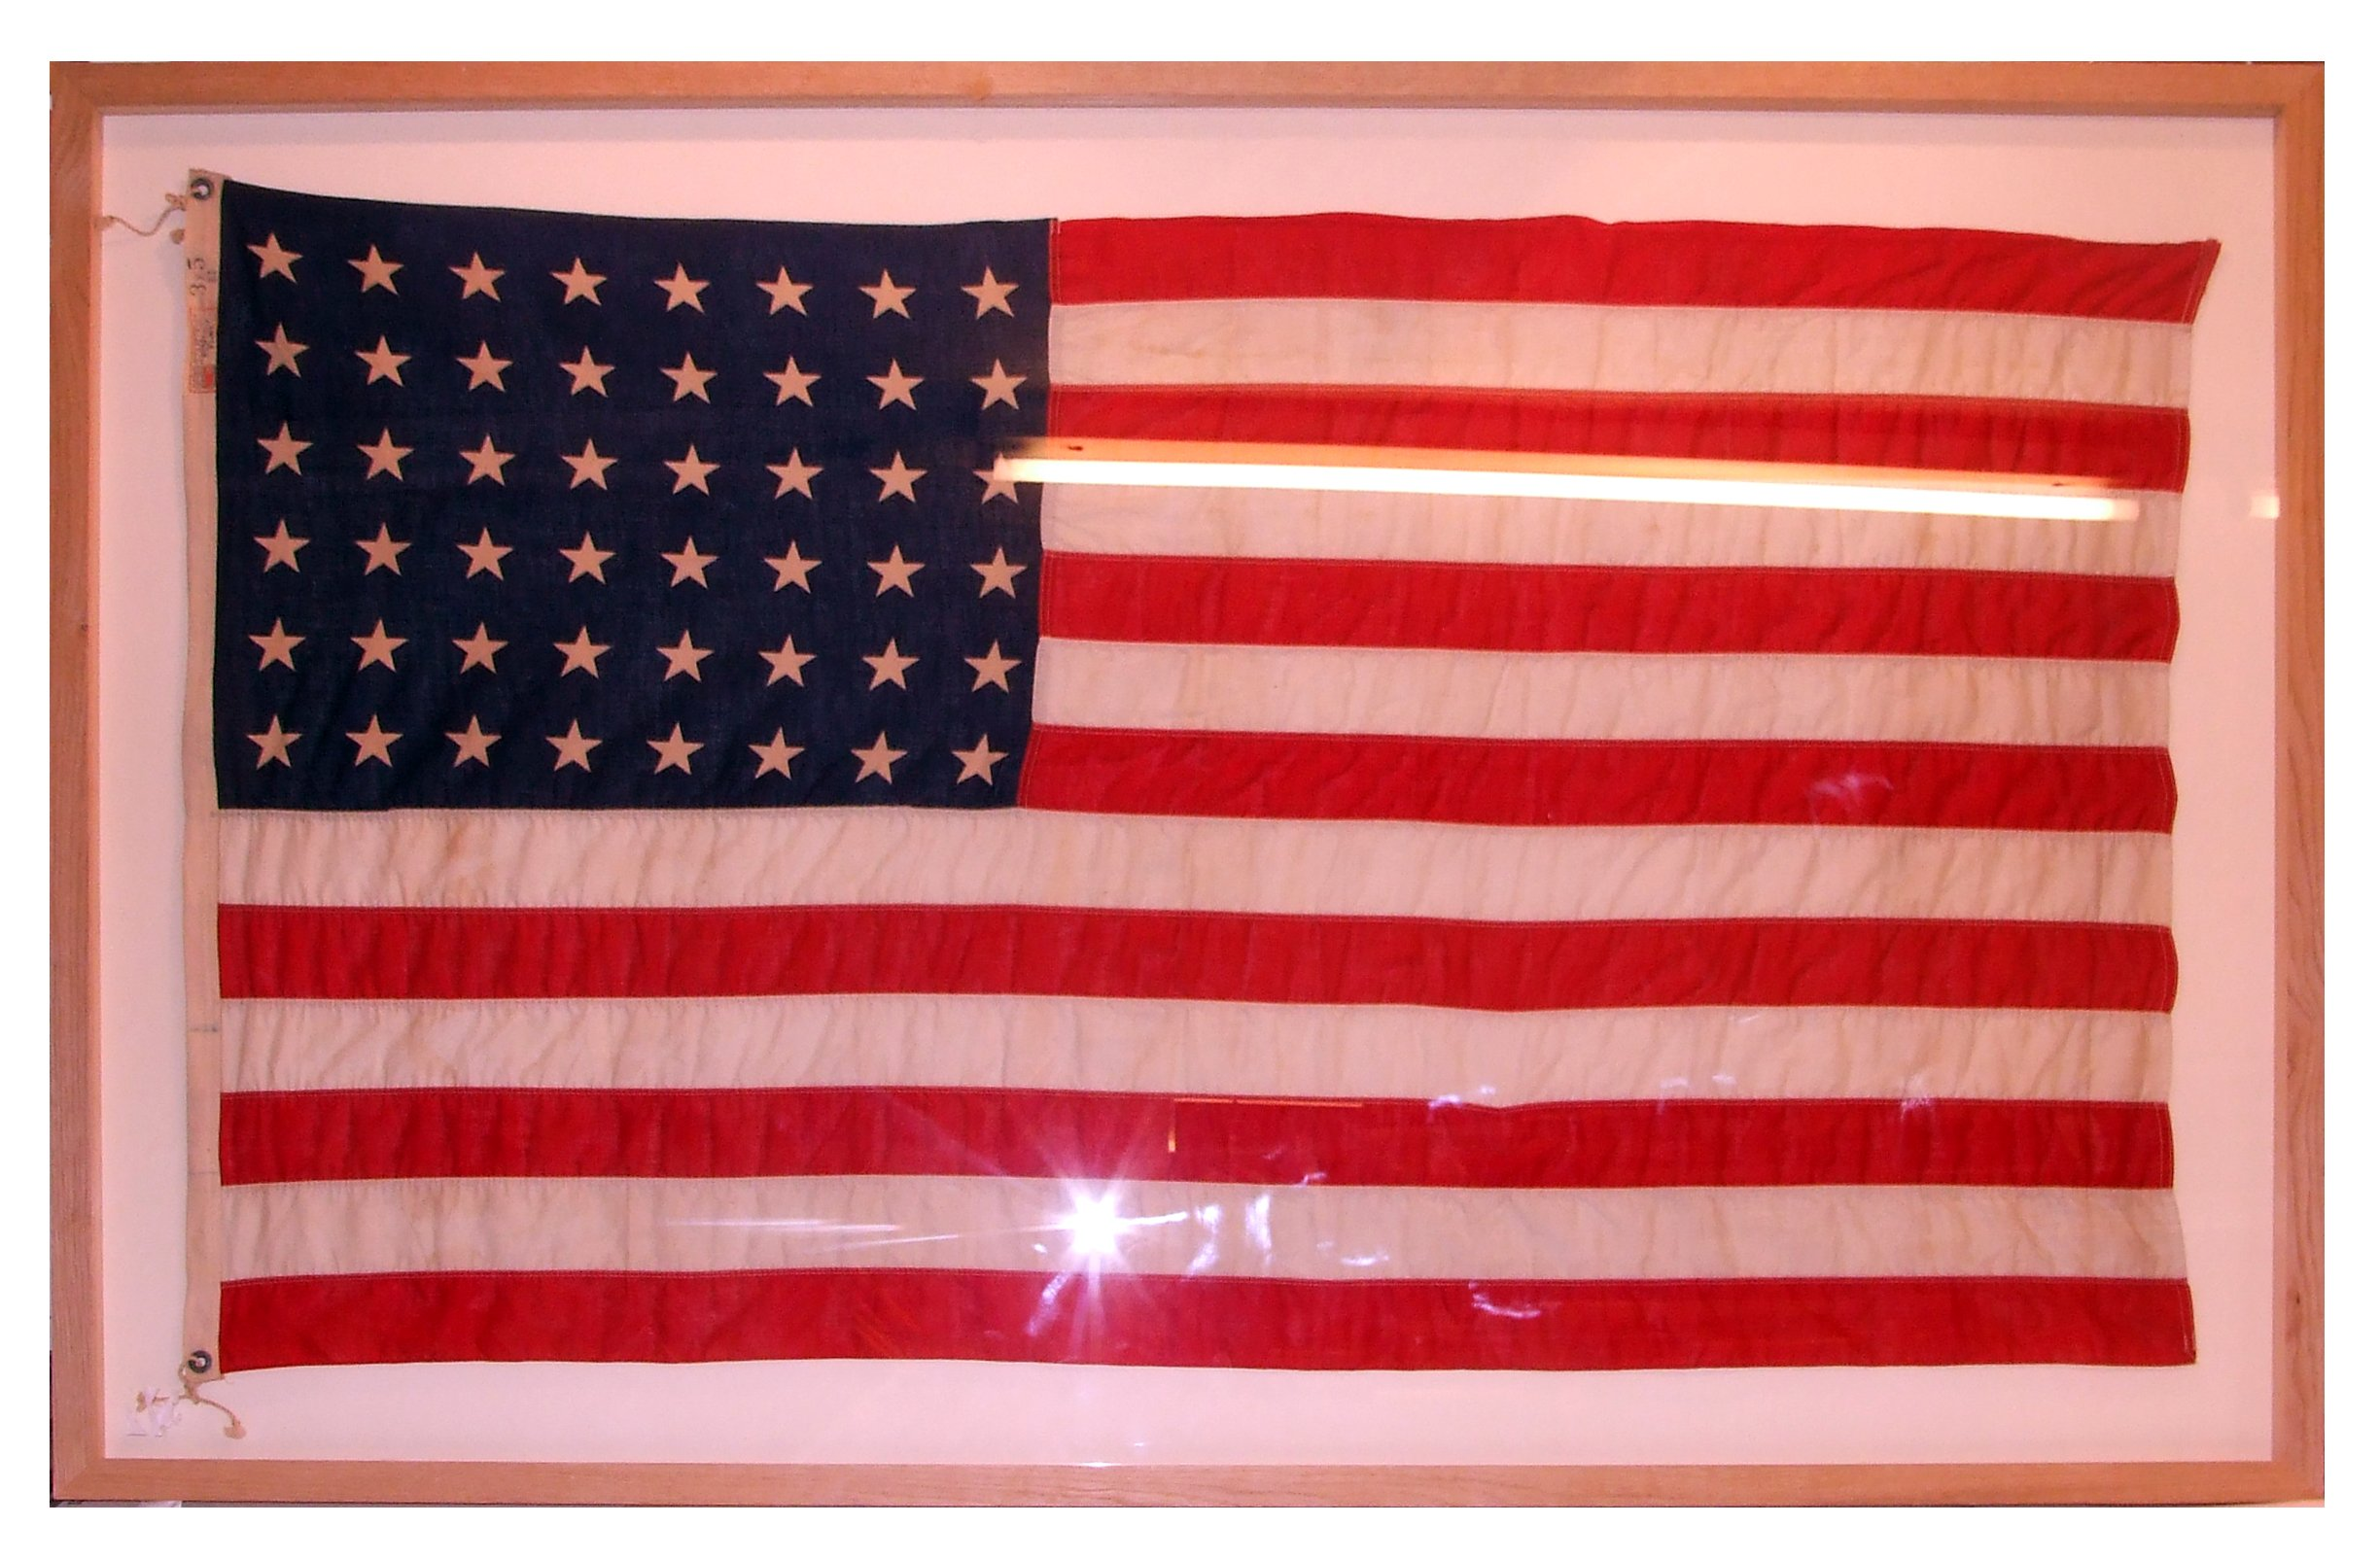 A frame of a flag